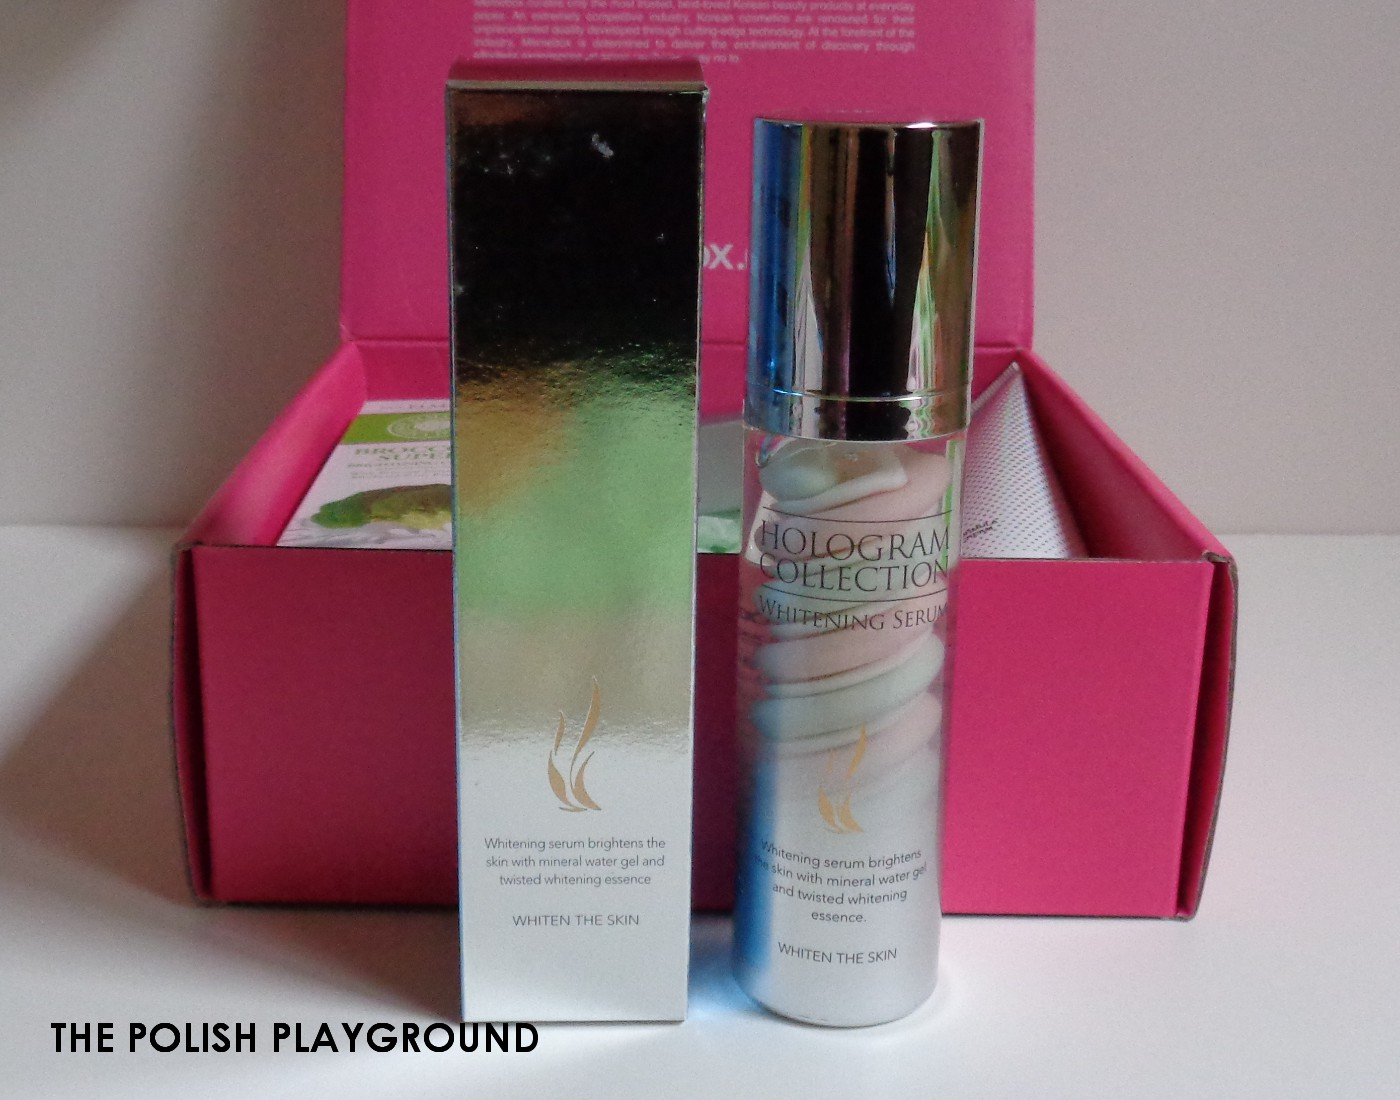 Memebox Special #73 Brighten & Correct Unboxing - AHC Hologram Collection Whitening Serum